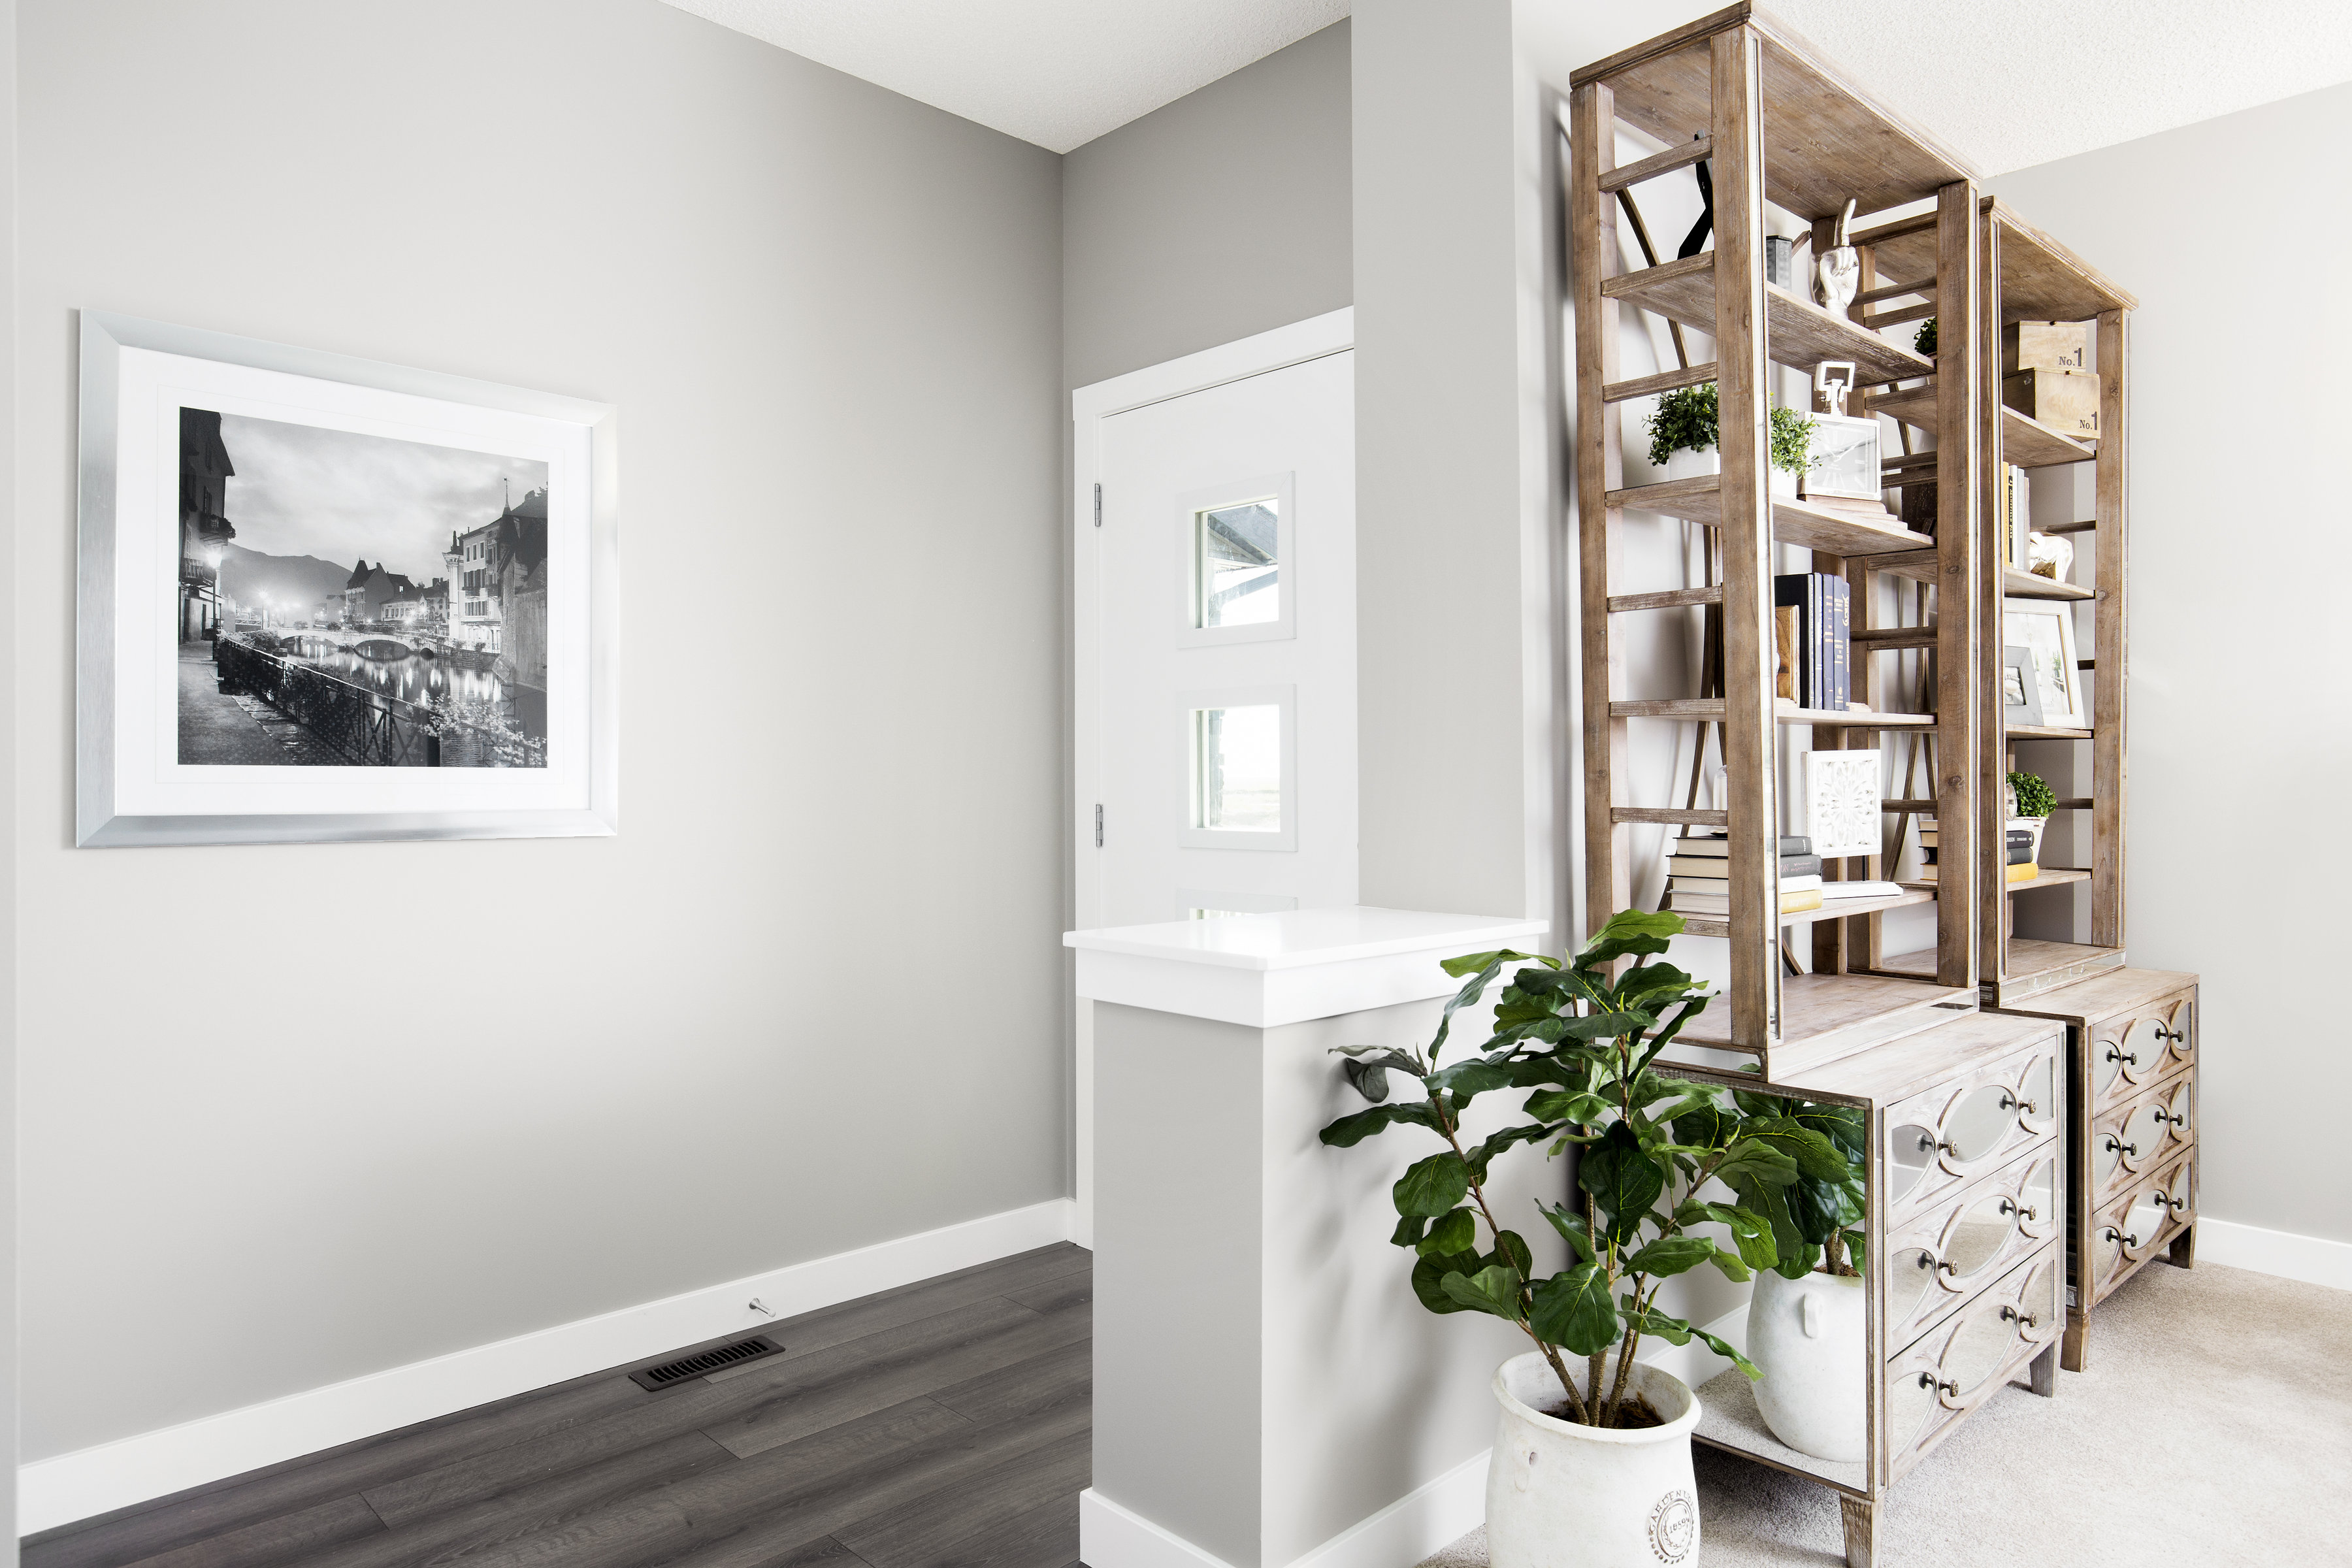 shane homes duplex showhome front entrance with bookshelf and plant.